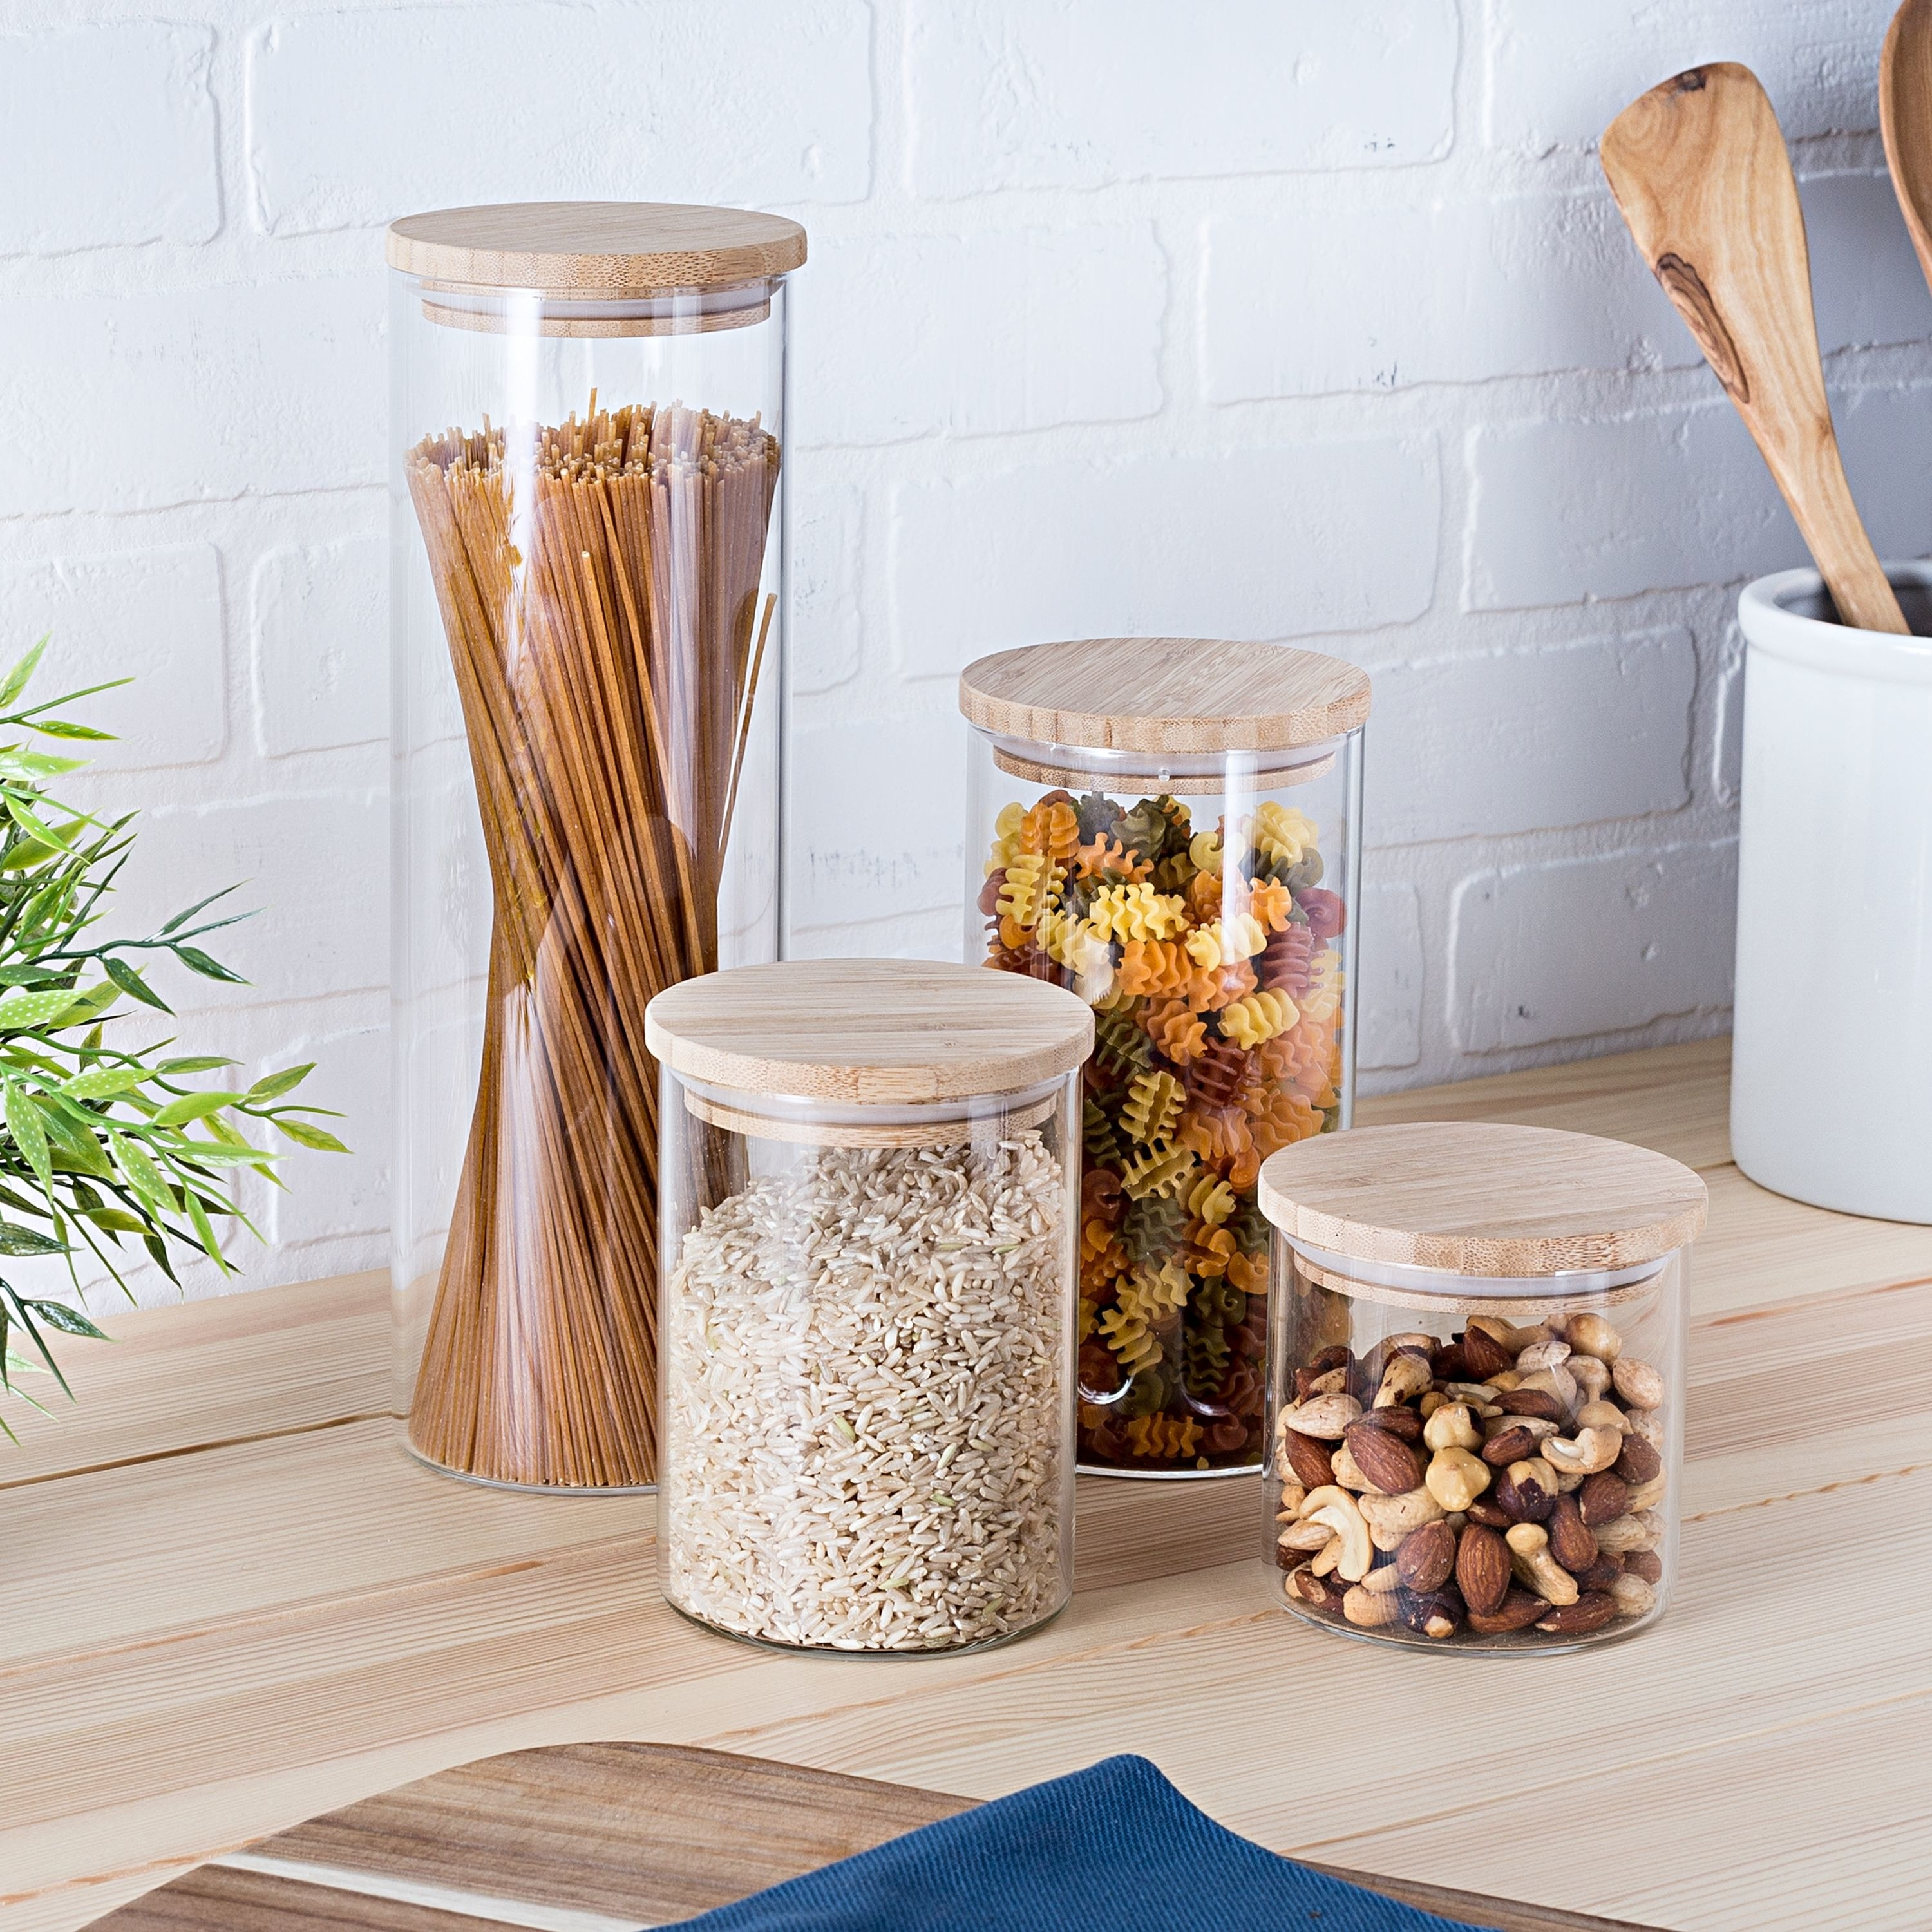 Glass jars with wooden tops